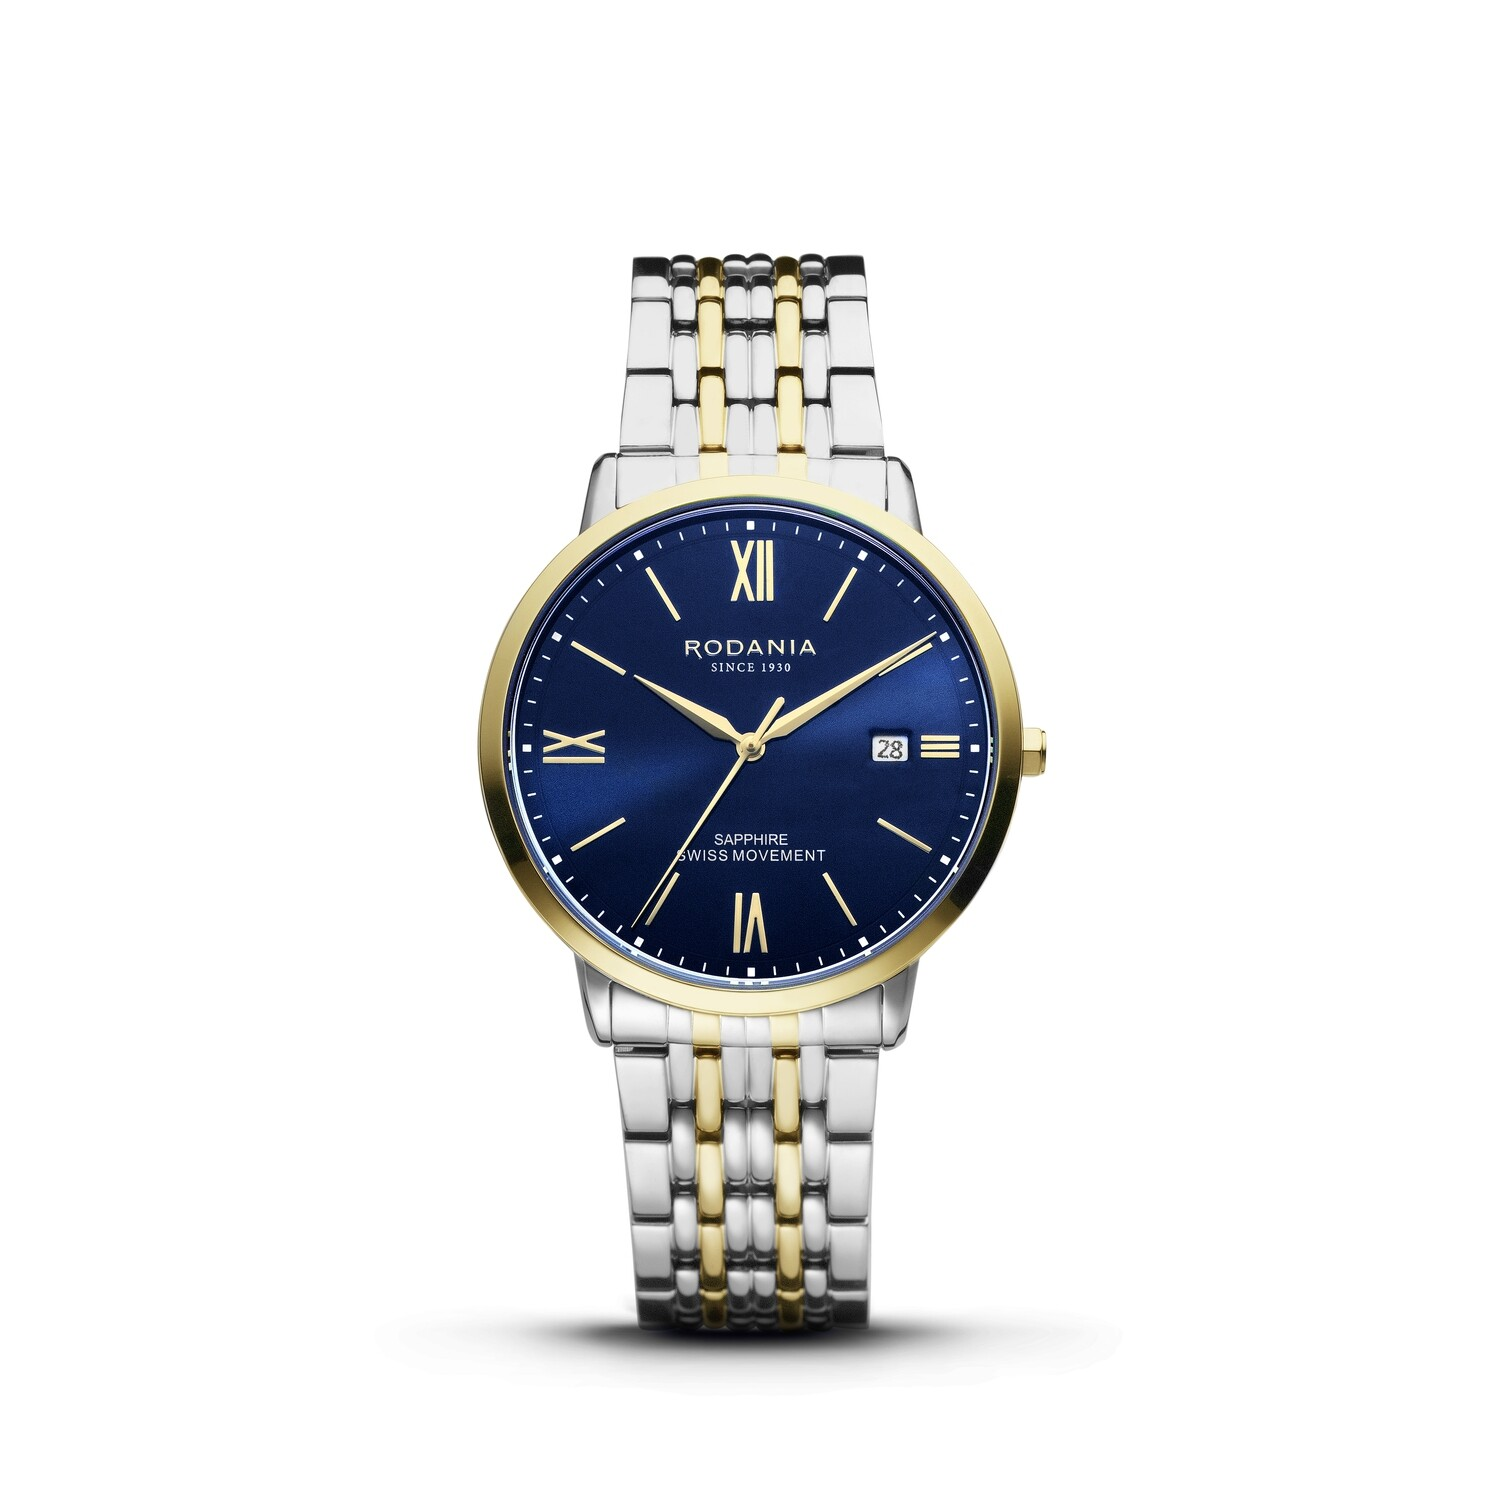 SION: Gold Bezel Silver Case, Blue Dial, Bi-color Silver/Gold bracelet, 40mm